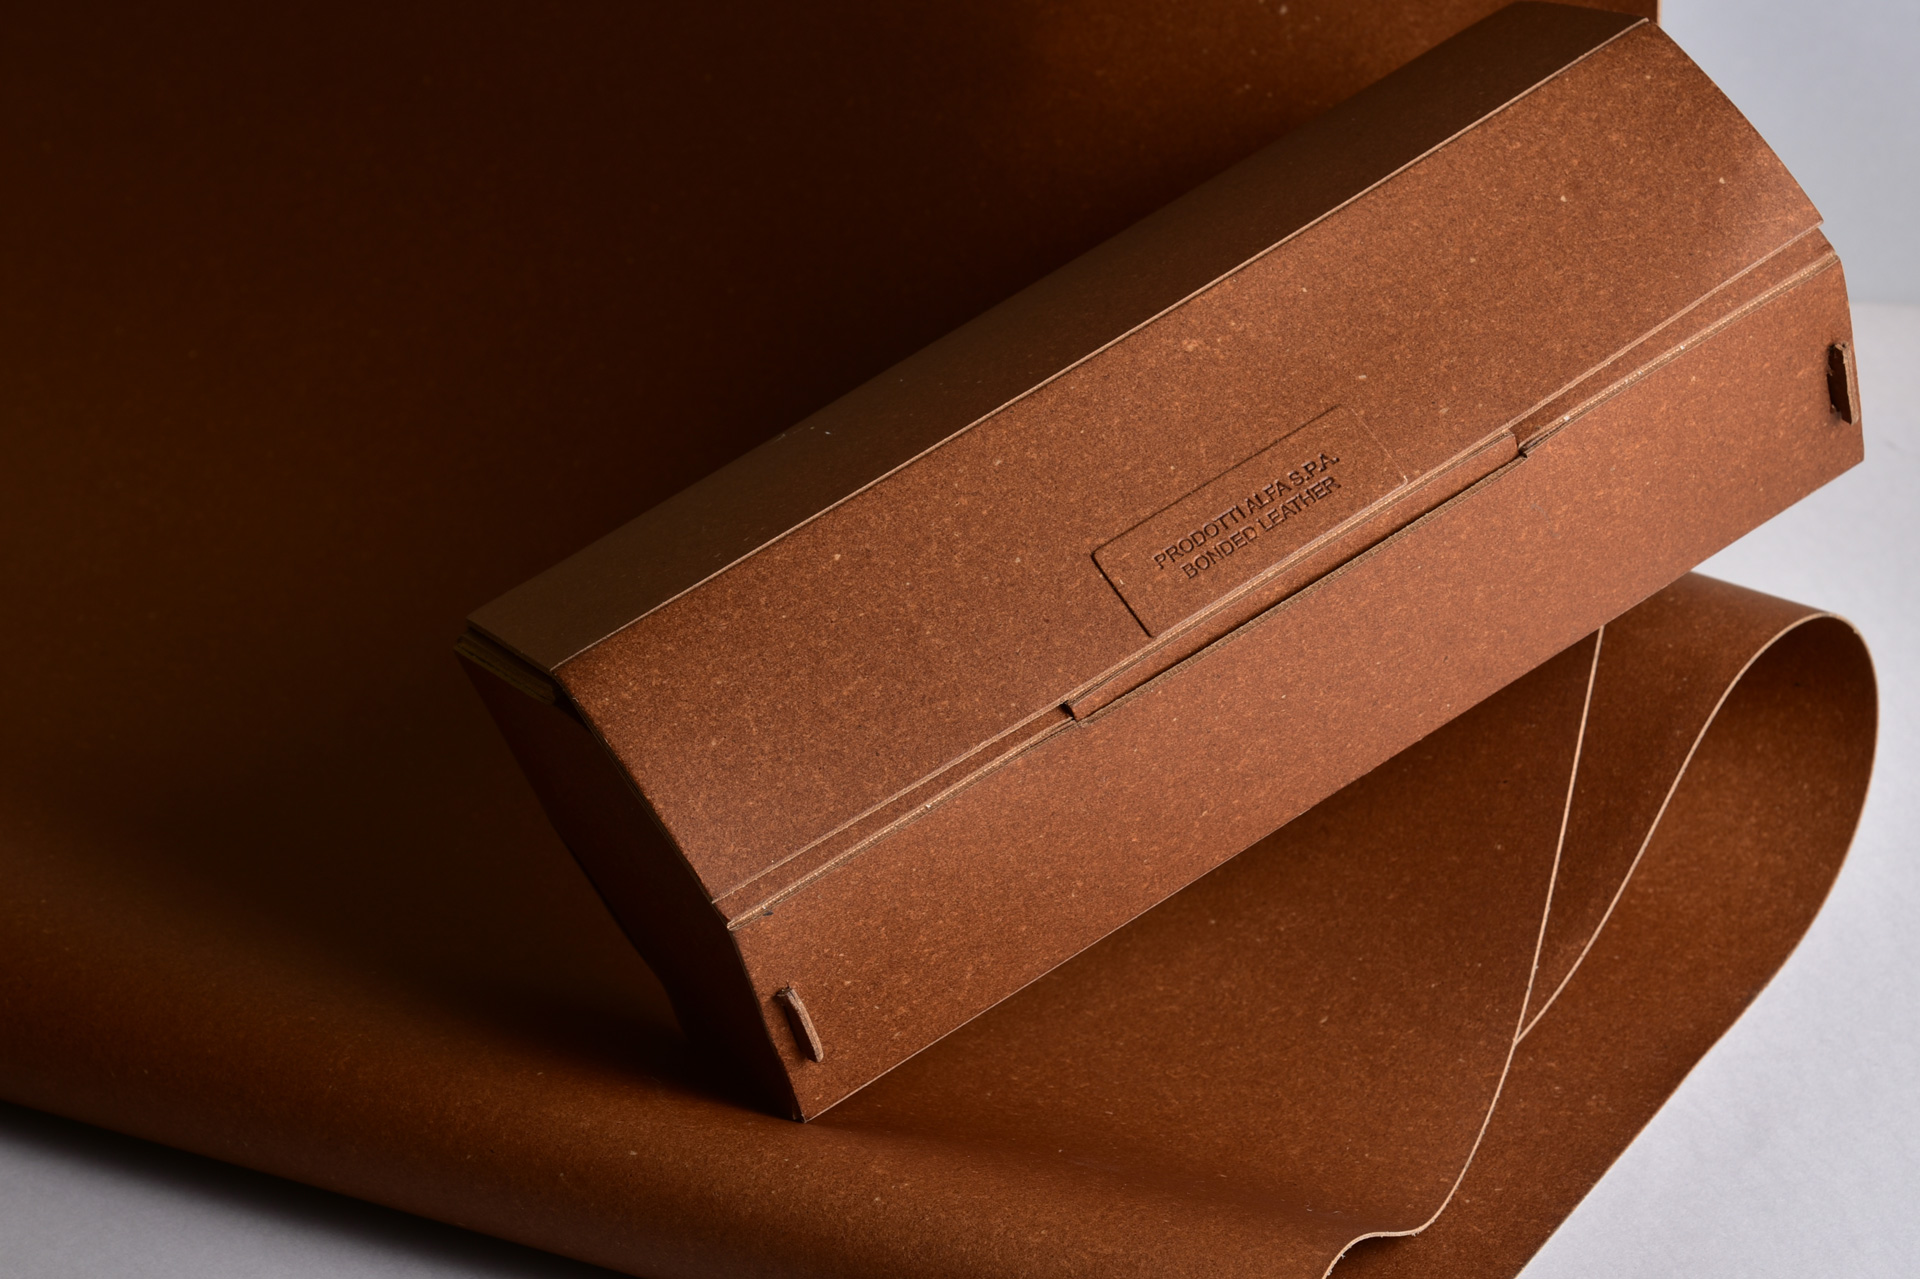 Packaging in cuoio rigenerato